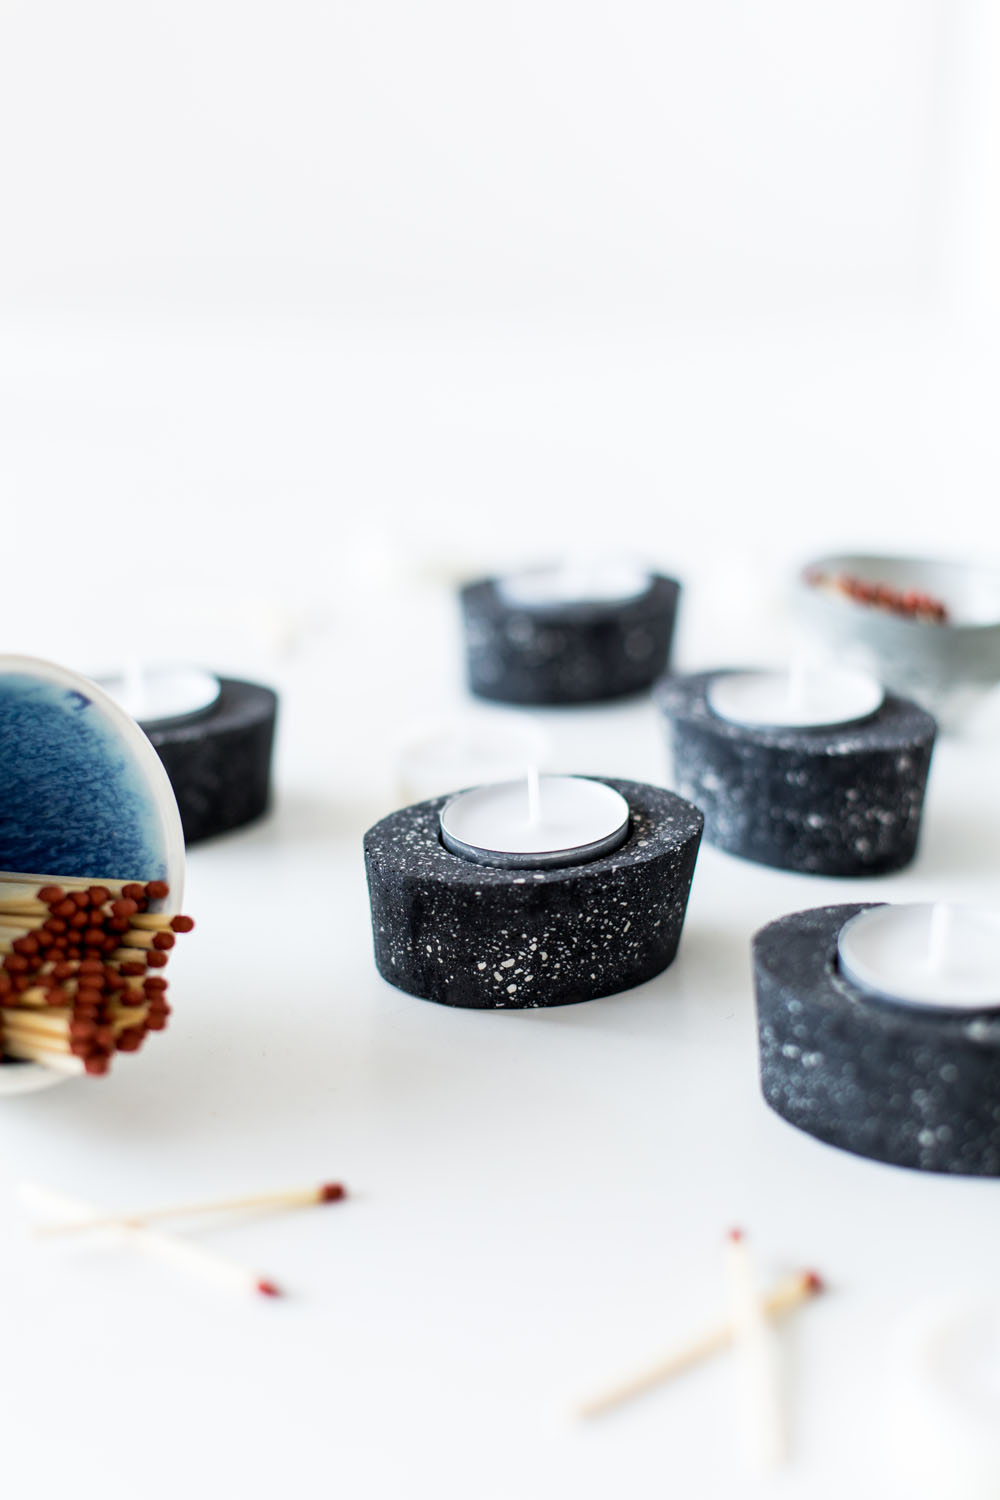 DIY Black Speckled Concrete Tea Light Candle Holders | @fallfordiy